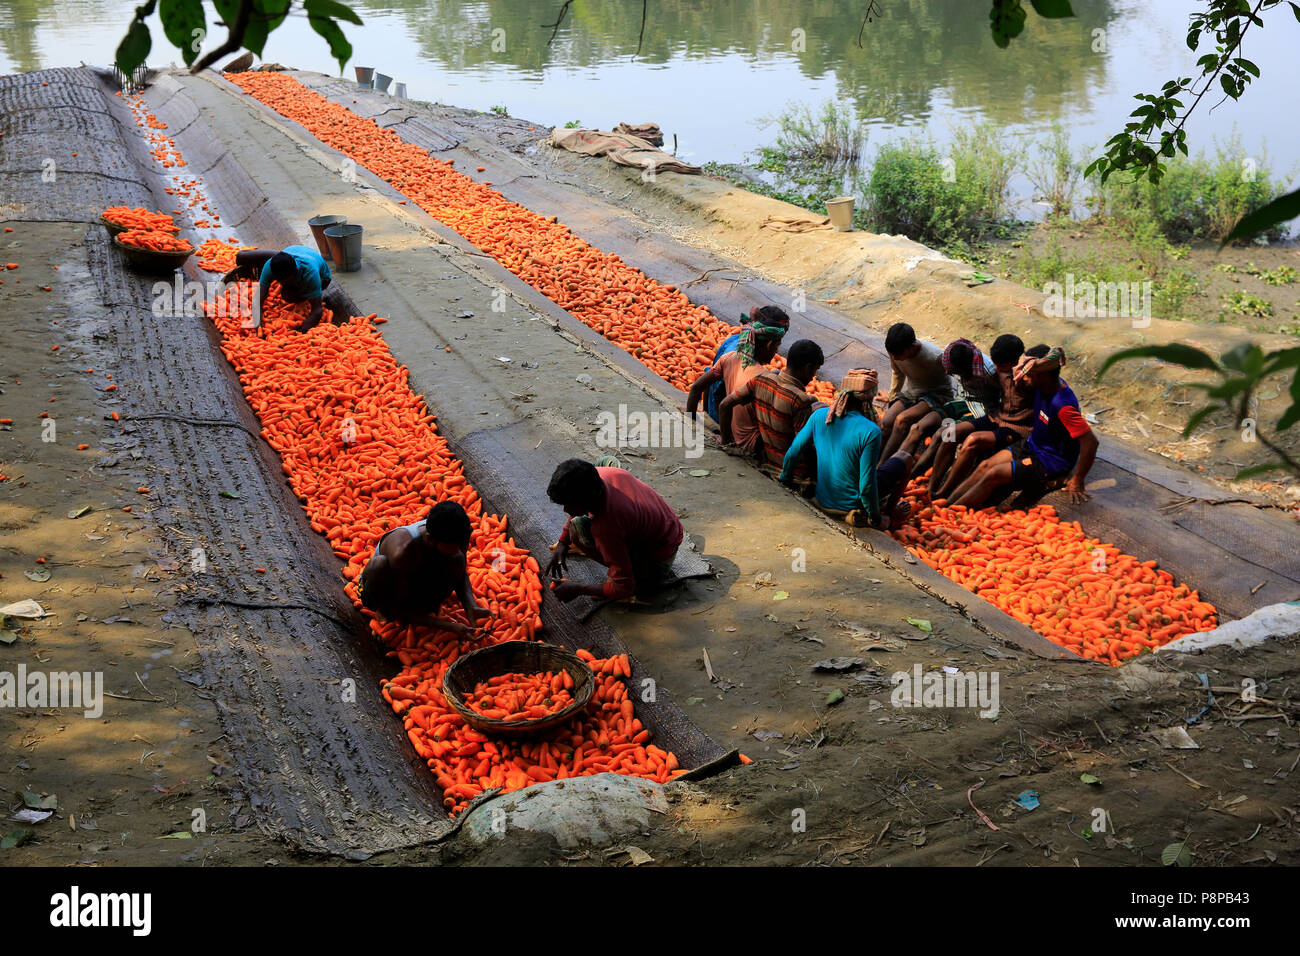 Workers wash the dirt off carrots picked from the fields before sending them to markets. Manikganj, Bangladesh - Stock Image